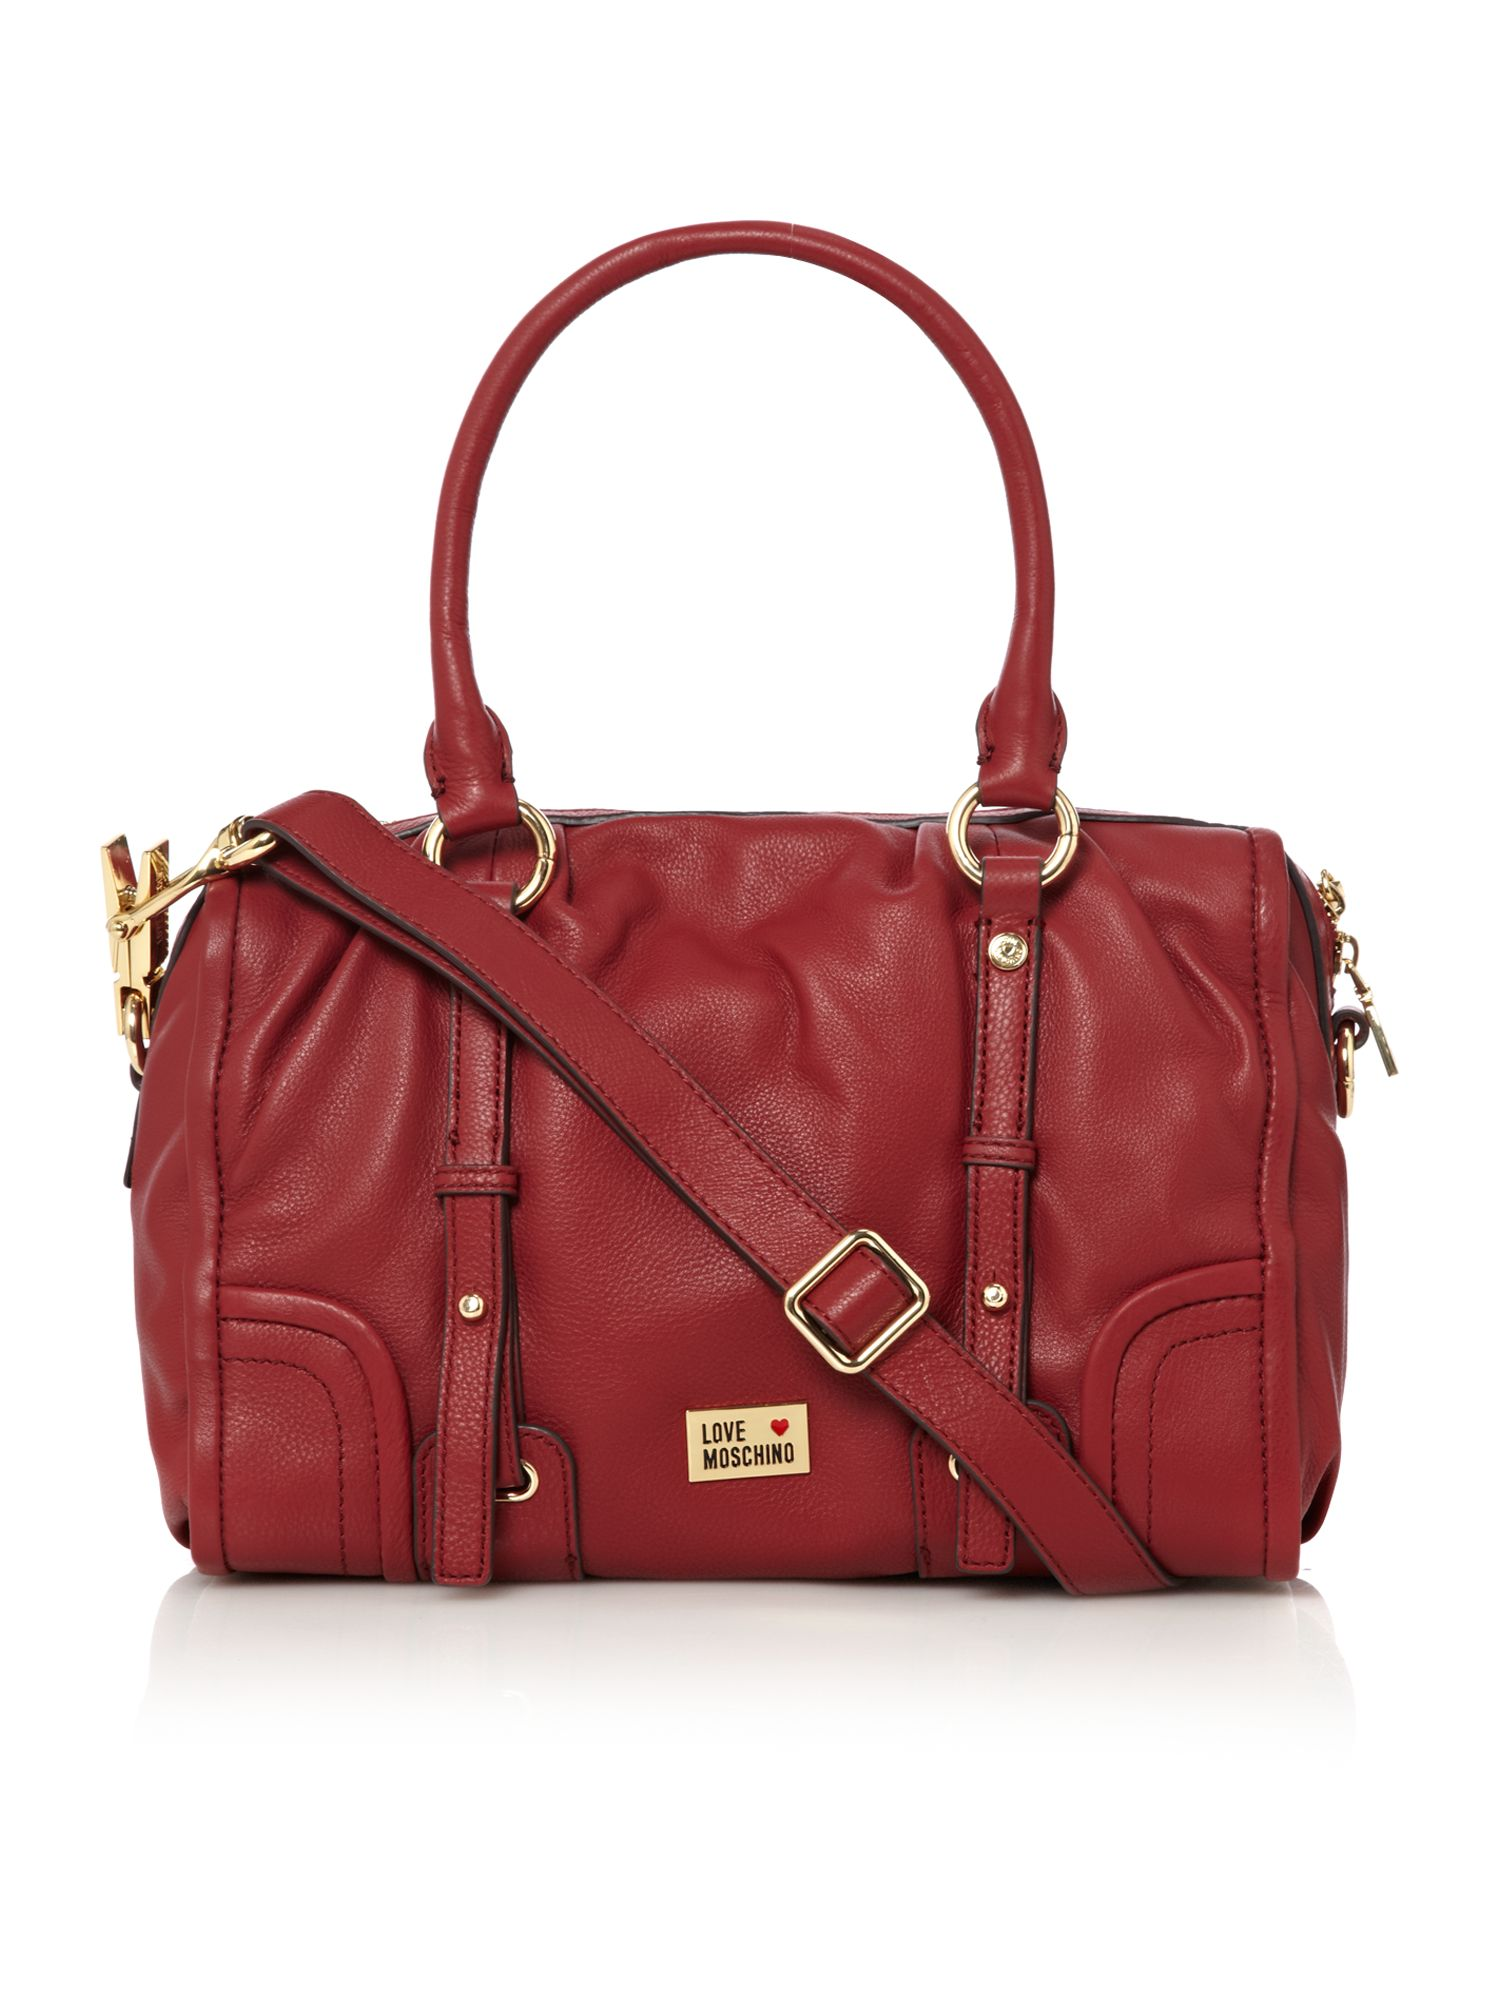 love moschino classic bowling bag in red lyst. Black Bedroom Furniture Sets. Home Design Ideas